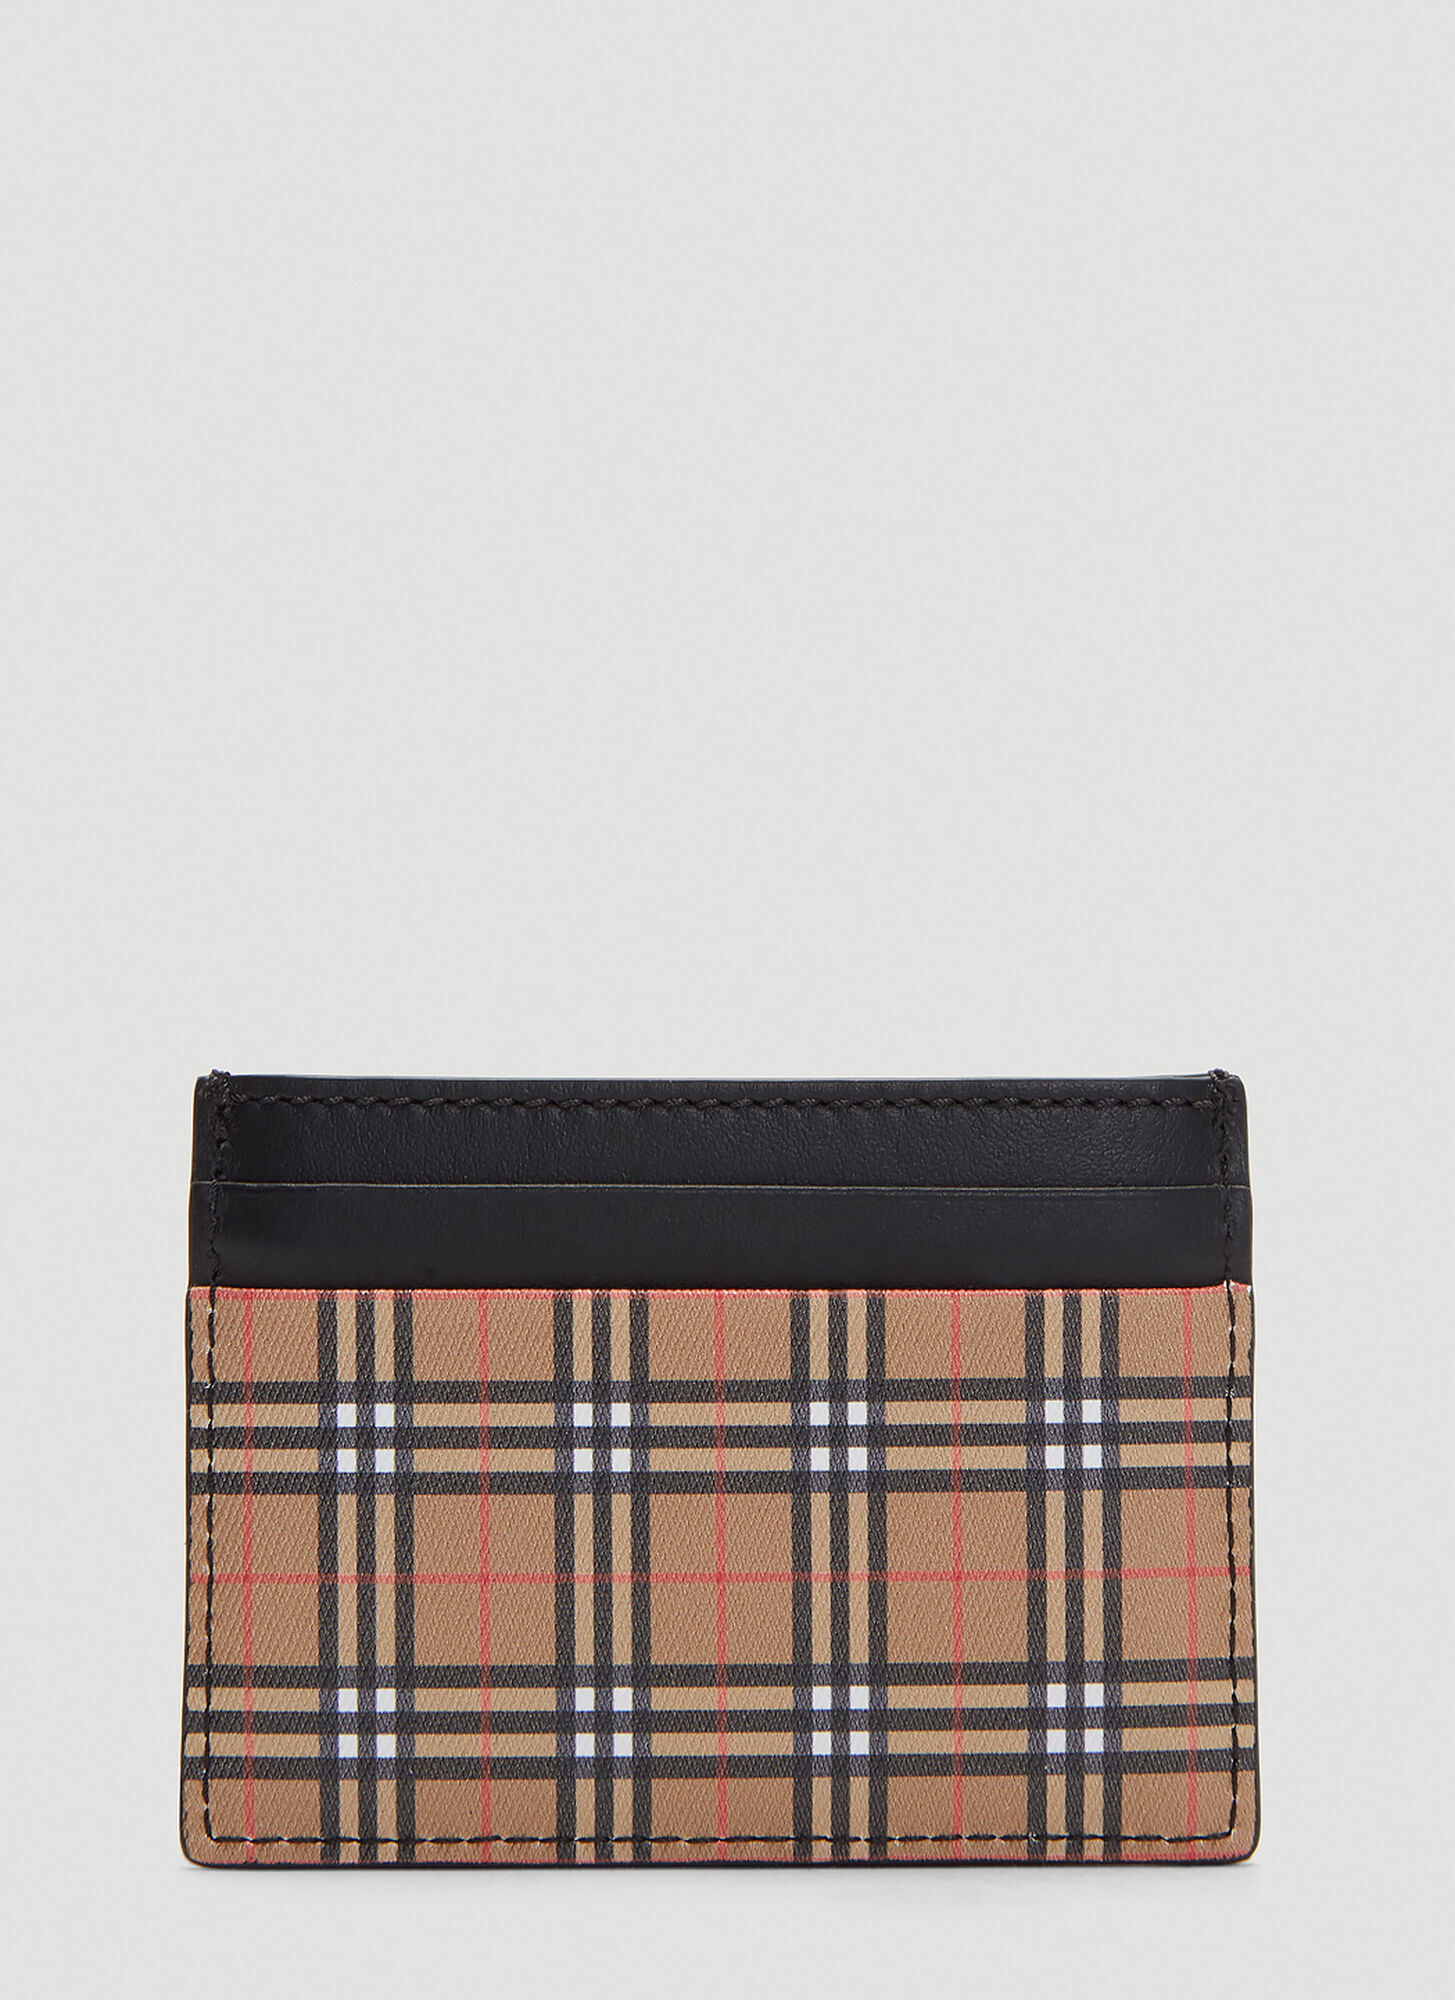 Burberry Classic Check Card Holder in Brown